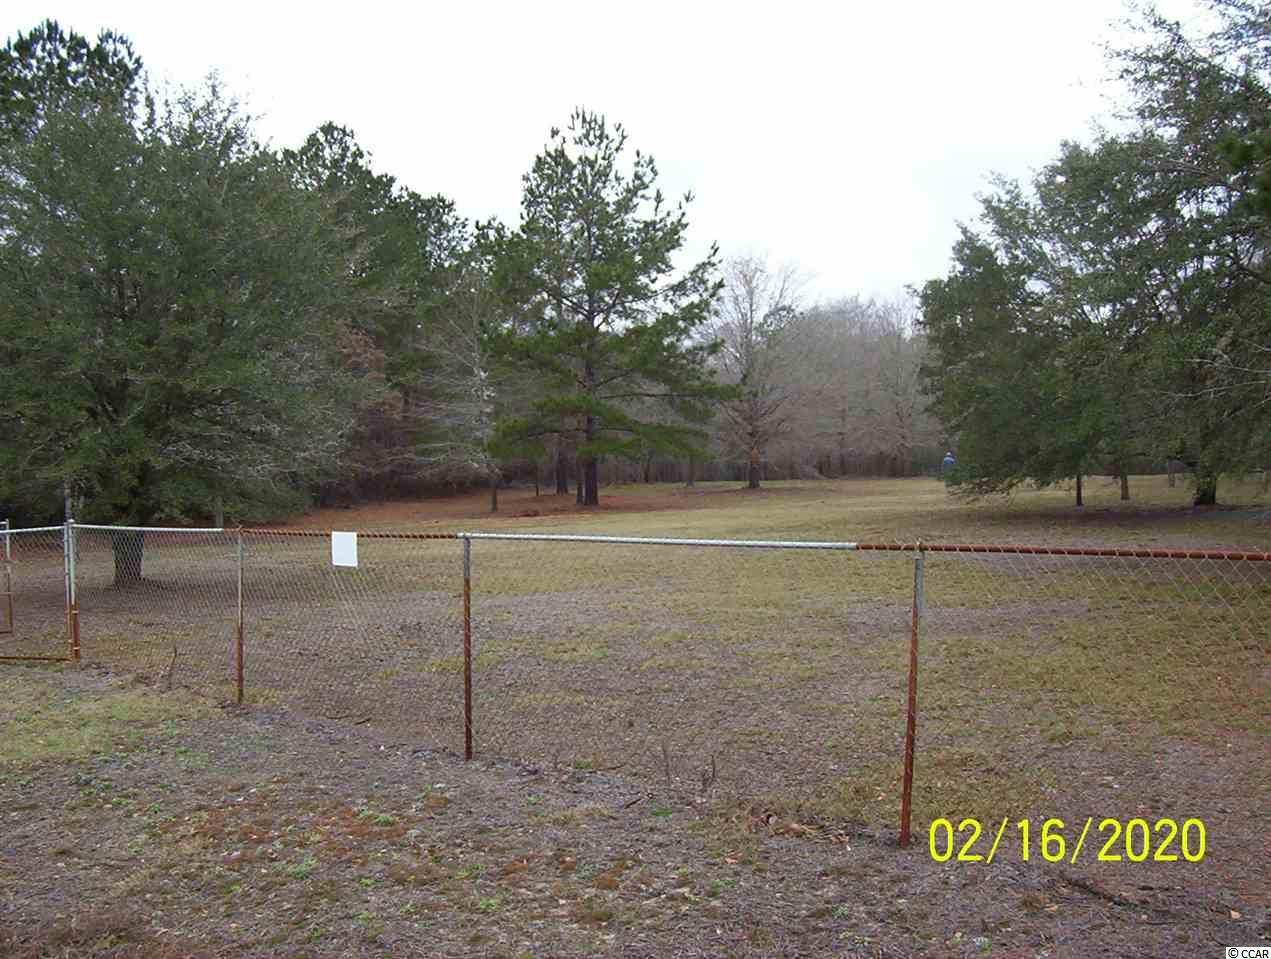 BEAUTIFUL 16.3 ACRE RIVERFRONT TRACT, TRACT IS LOCATED AT THE INTERSECTION OF THE WACCAMAW RIVER AND GRISSETT LAKE, FRONT PROPERTY LINE HAS FENCE ON IT, APPROX. 98 FT. ROAD FRONTAGE, APPROX. 1,165 FT. RIVER FRONTAGE , OLDER PLAT ON FILE, GRAND STRAND WATER/SEWER AT PROPERTY FRONT, LOTS OF HARDWOODS AND PINES, WETLANDS AMOUNT IS QUESTIONABLE, PROPERTY IS FLOOD ZONED, MUST BUILD ON PILINGS, COMPLETE PEACEFUL AND QUIET AREA, ZONING WILL ALLOW FOR MOBILE HOME, MODULAR HOME, AND HOUSE, AE FLOODWAY, BASE FLOOD ELEVATION IS 14 FT. PLUS 1 FT., DEED RETRICTIONS ON FILE, MAKE OFFER!!!!!